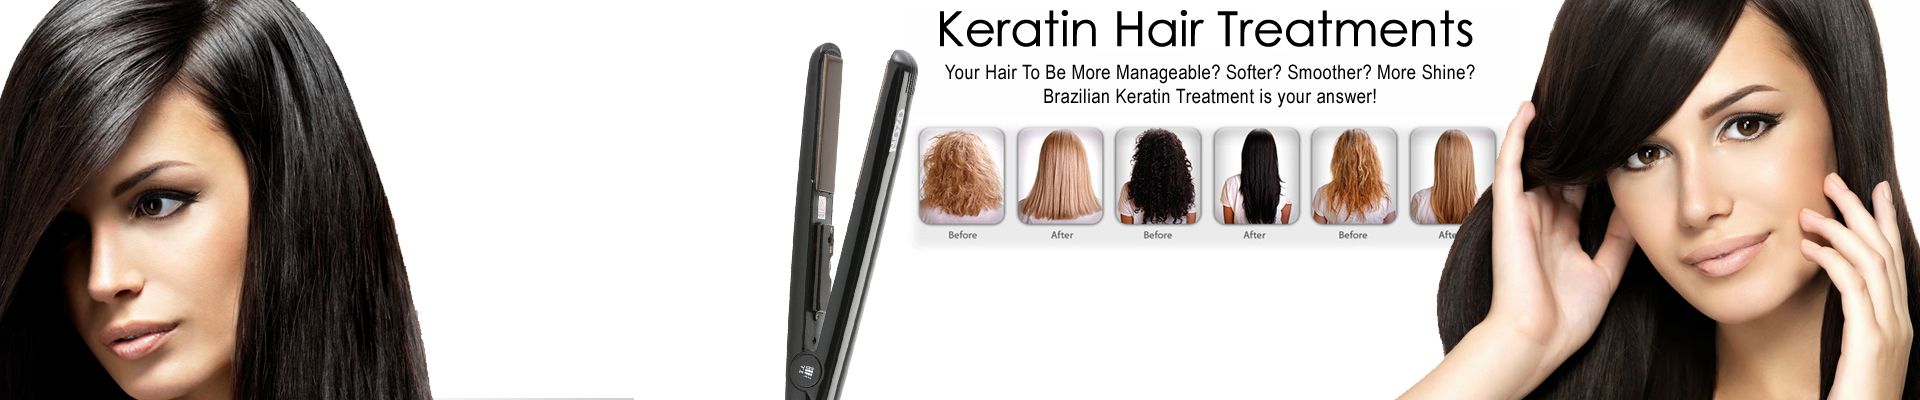 Keratin Hair Treatments